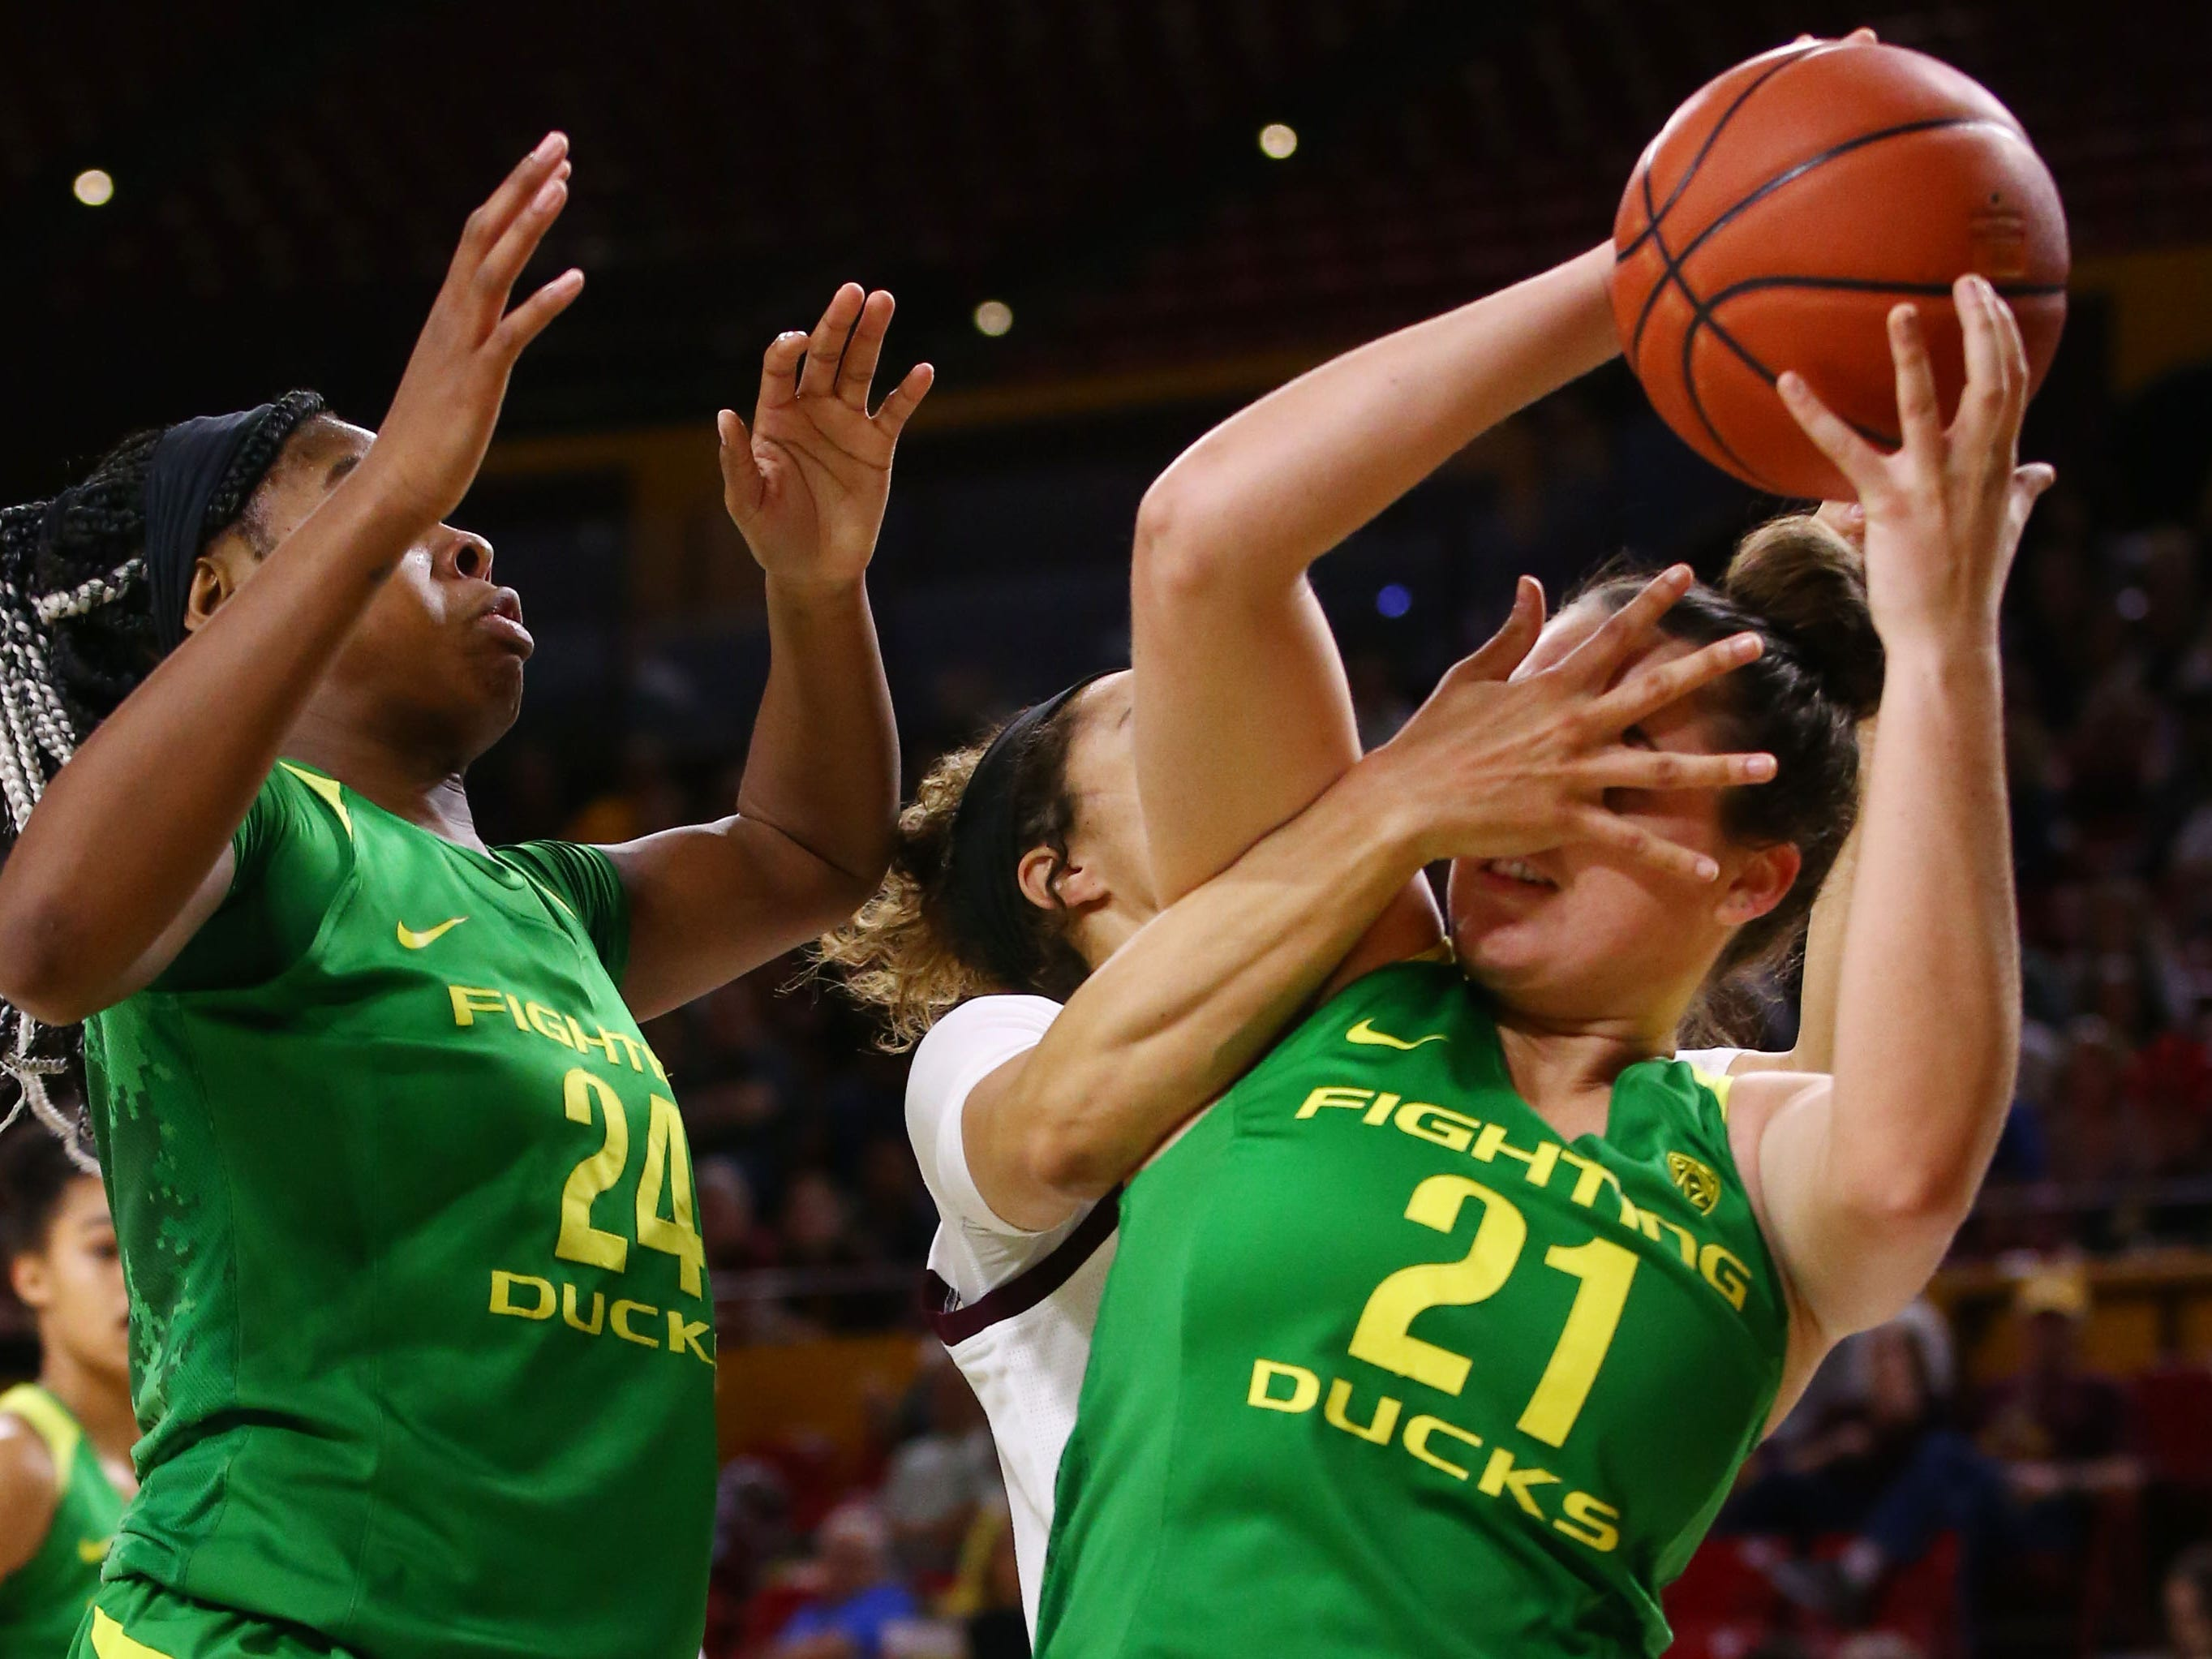 Oregon Ducks forward Erin Boley (21) gets a hand in the face by Arizona State Sun Devils forward Kianna Ibis (42) in the first half on Mar. 3, 2019, at Wells Fargo Arena in Tempe, Ariz.